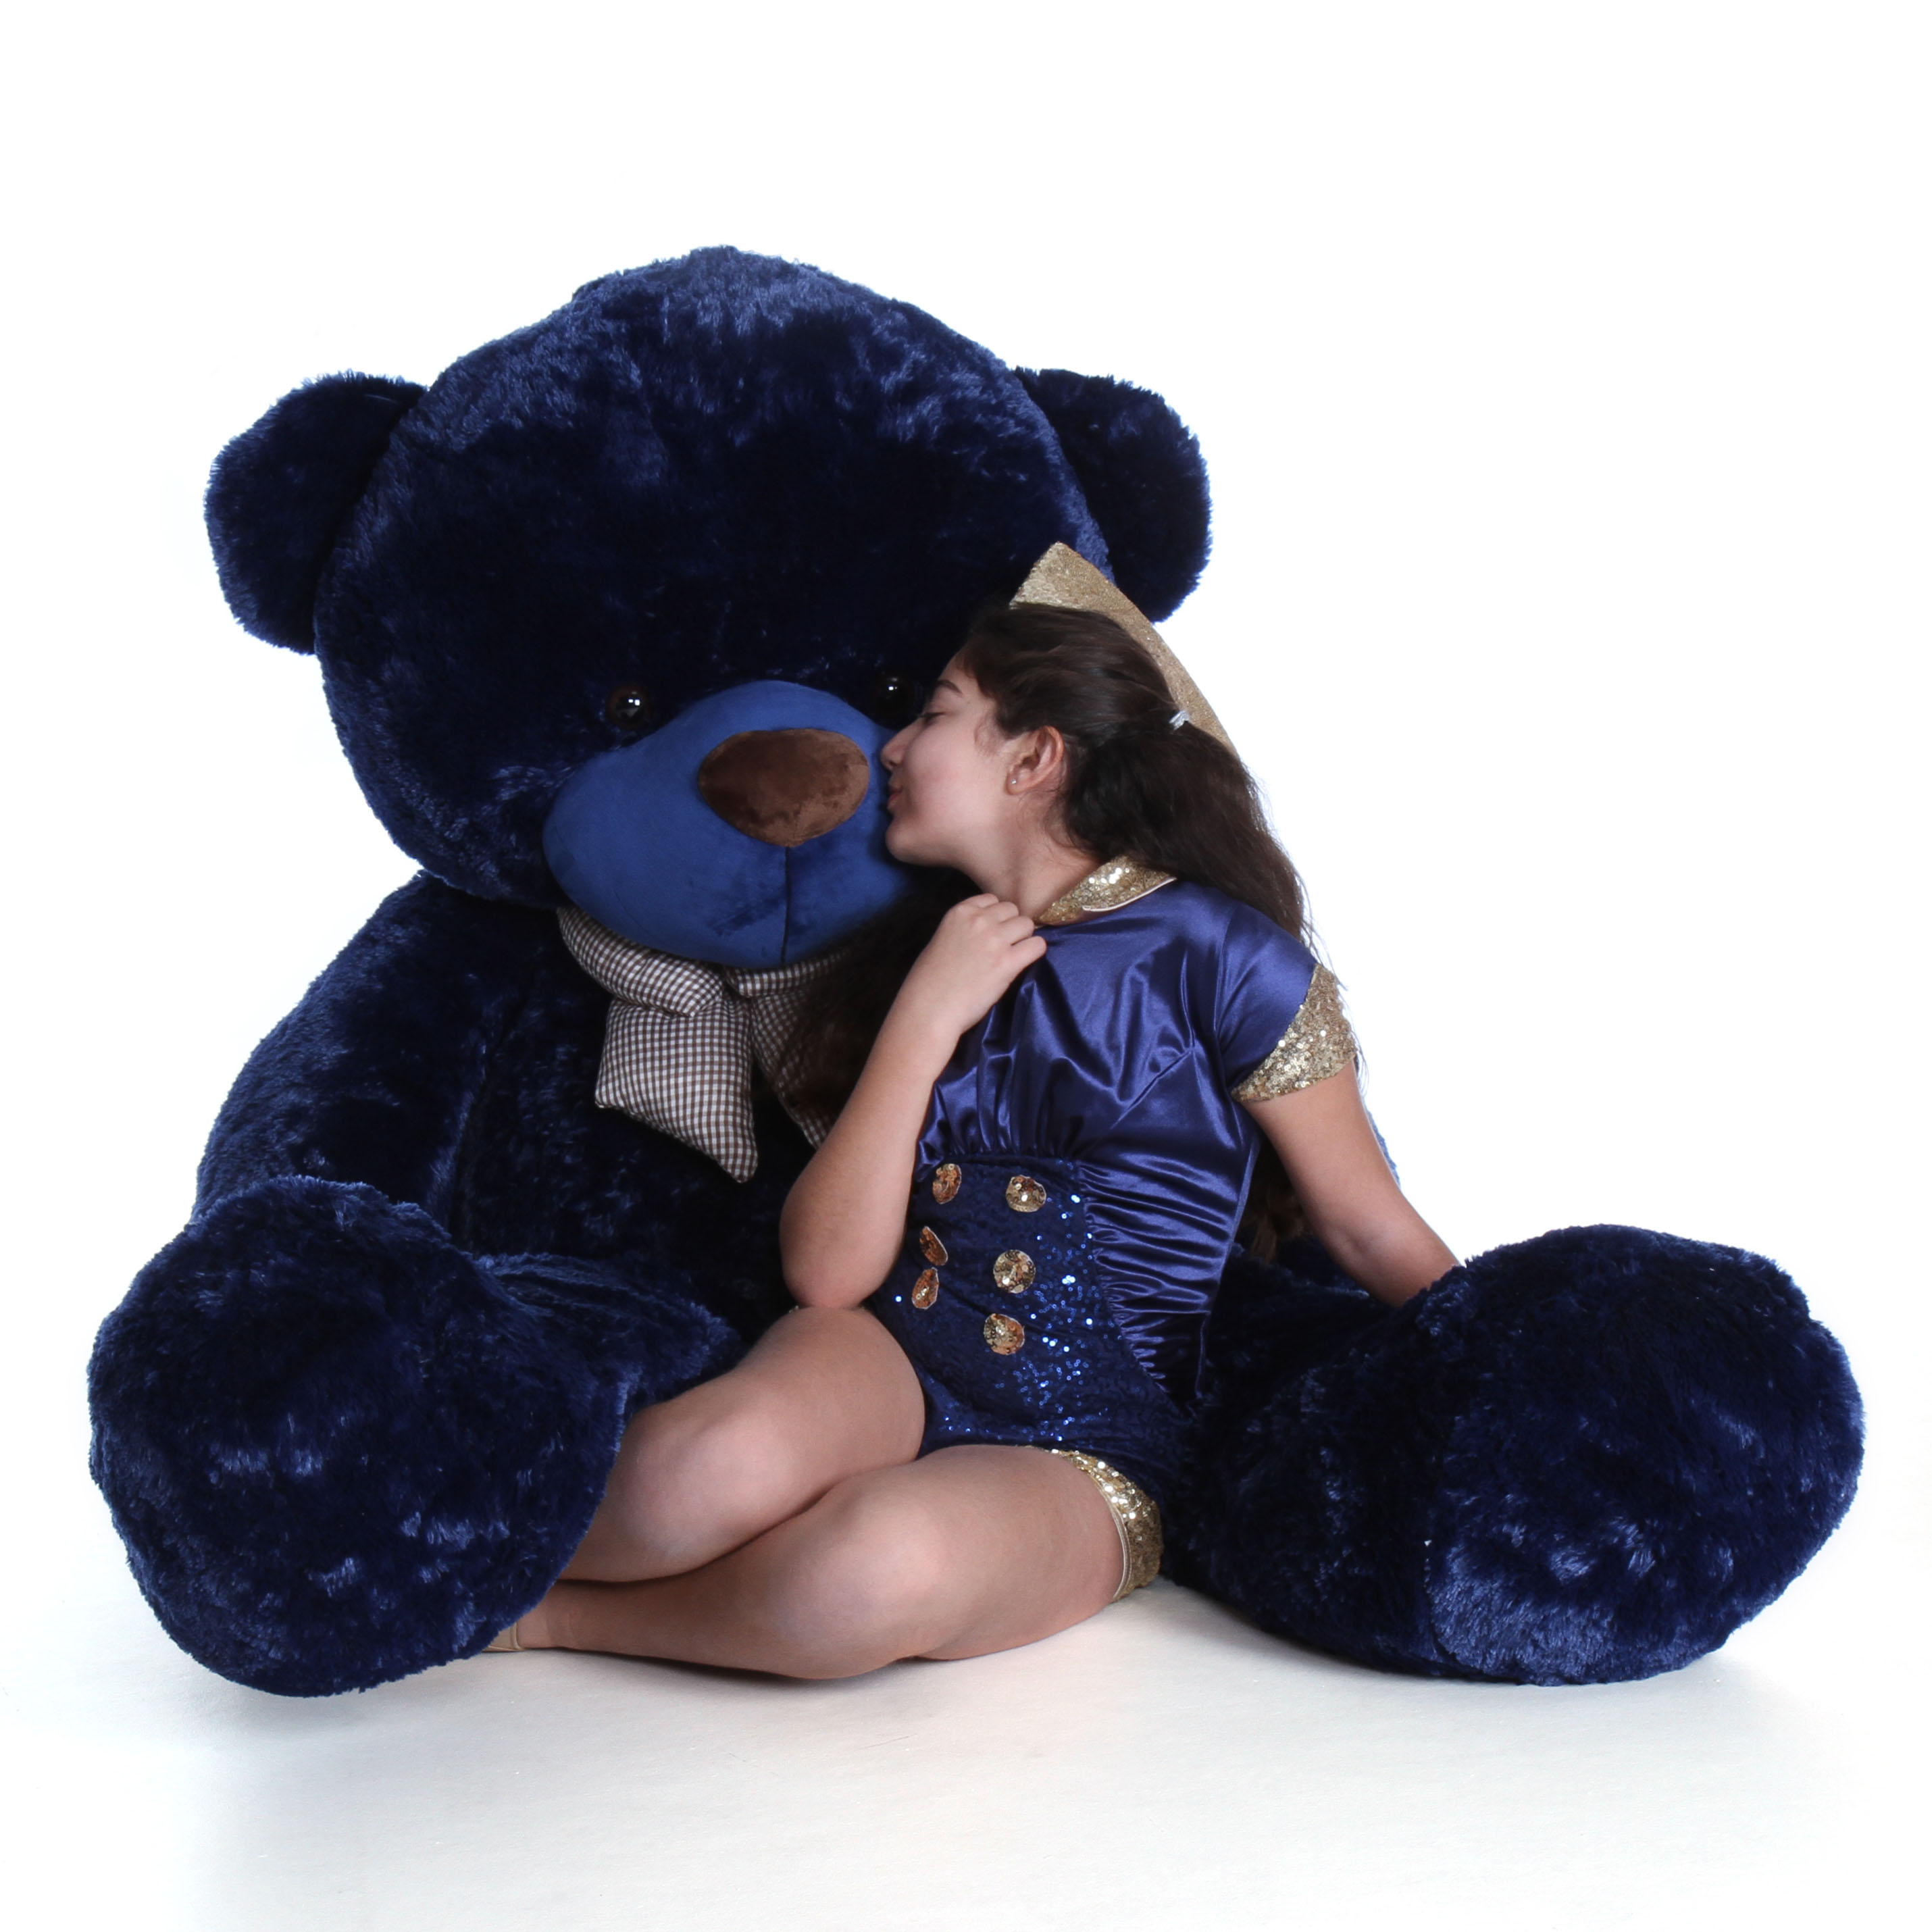 72in-giant-teddy-royce-cuddles-navy-blue-huge-soft-bear.jpg